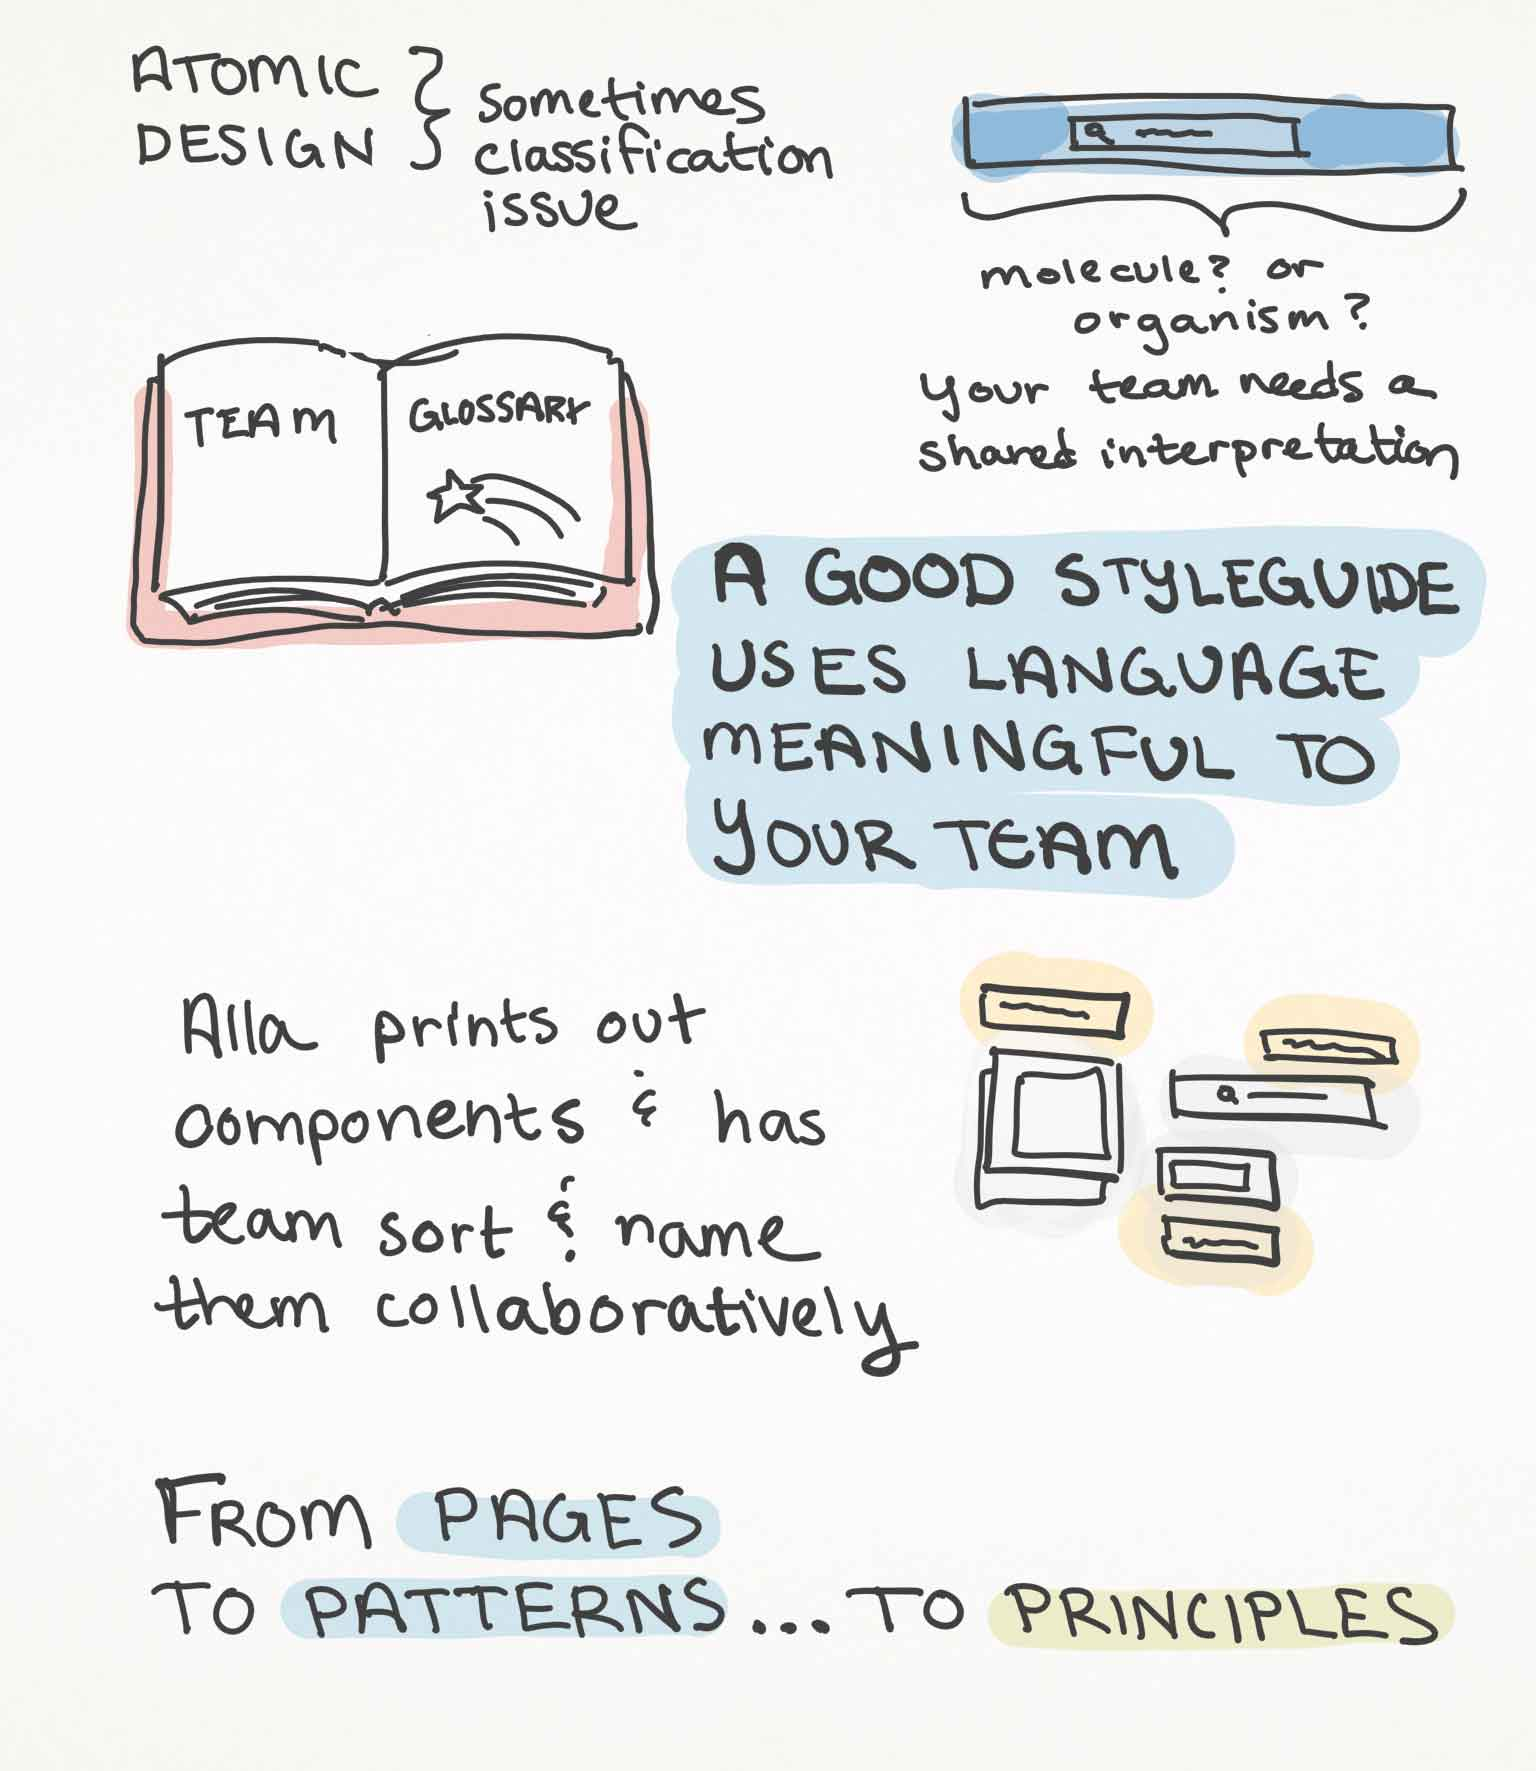 Sketchnotes page 6 from Ethan Marcotte's talk